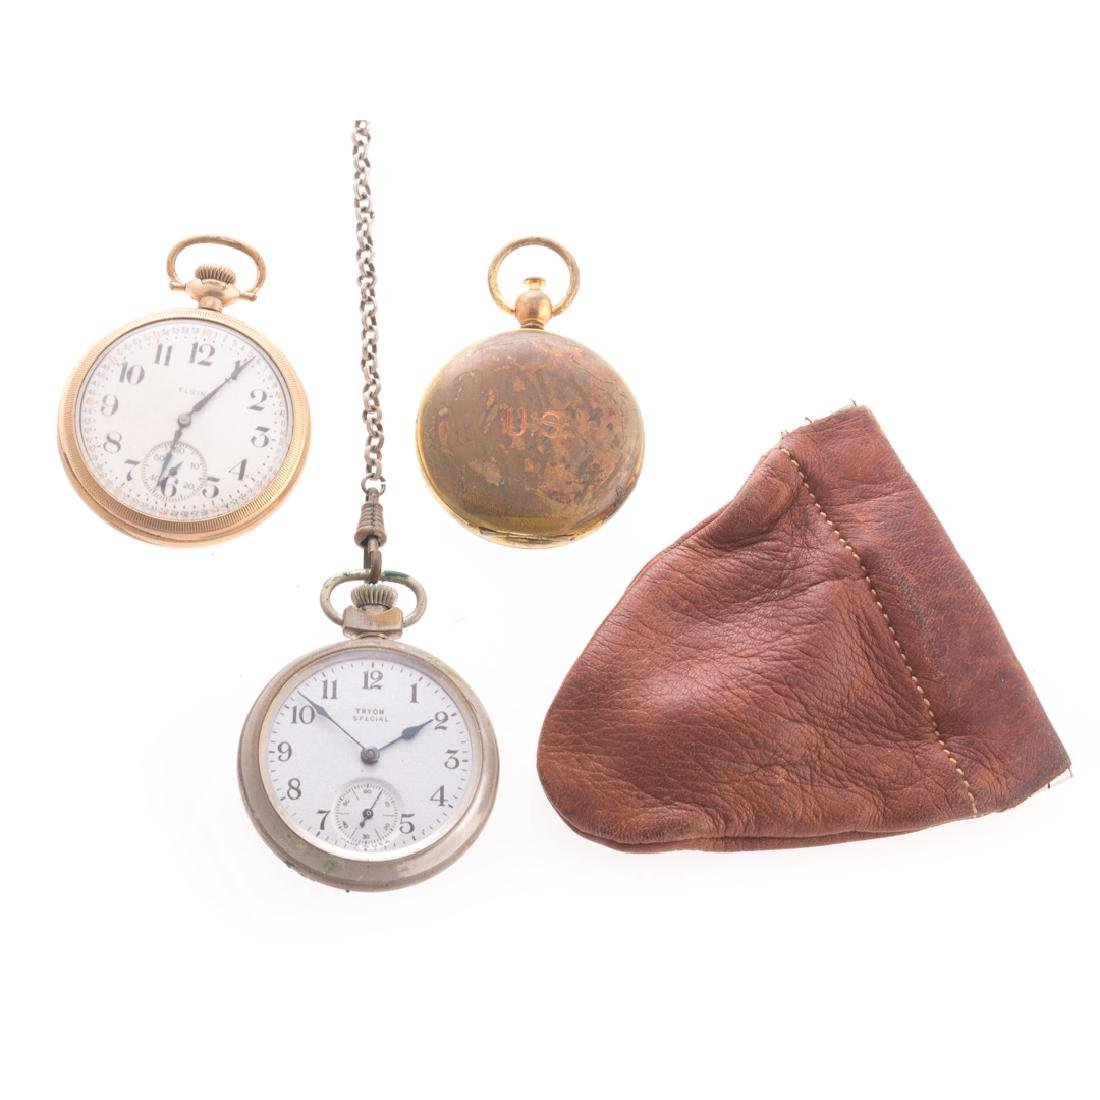 Two Pocket watches and a US Army Compass